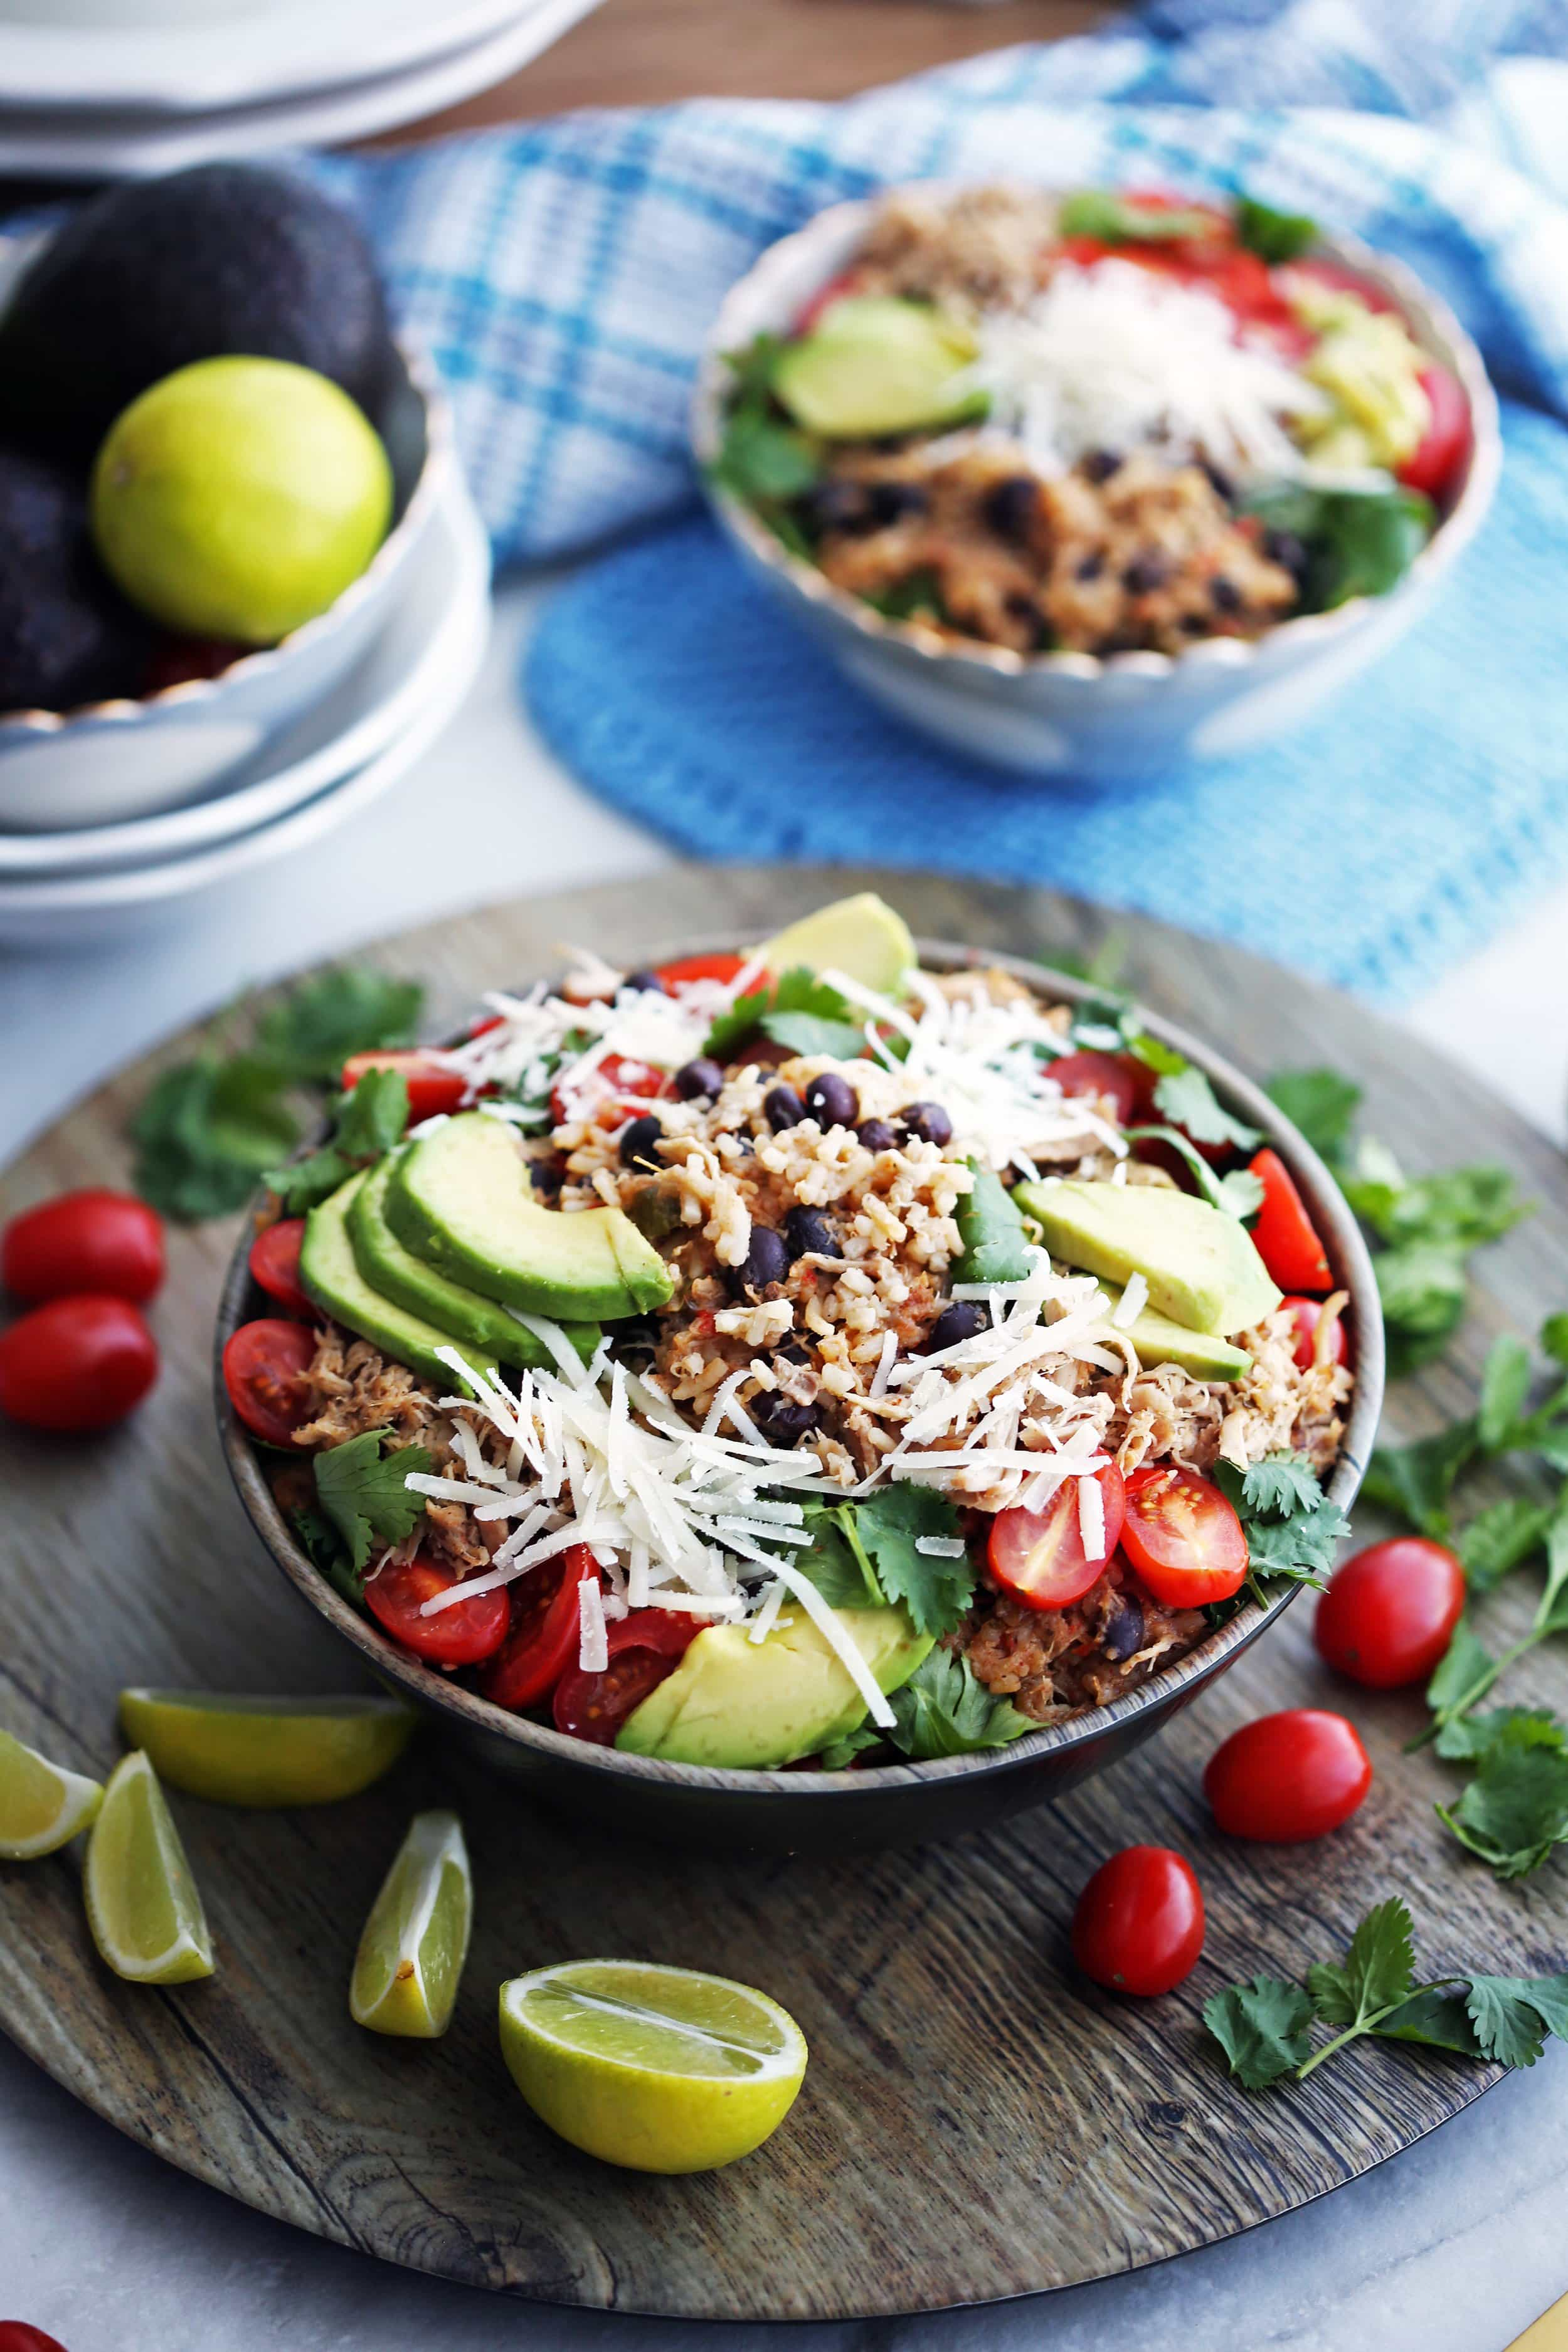 A full bowl of shredded chicken, black beans, and rice that's topped with avocado, cheese, tomatoes, and cilantro.